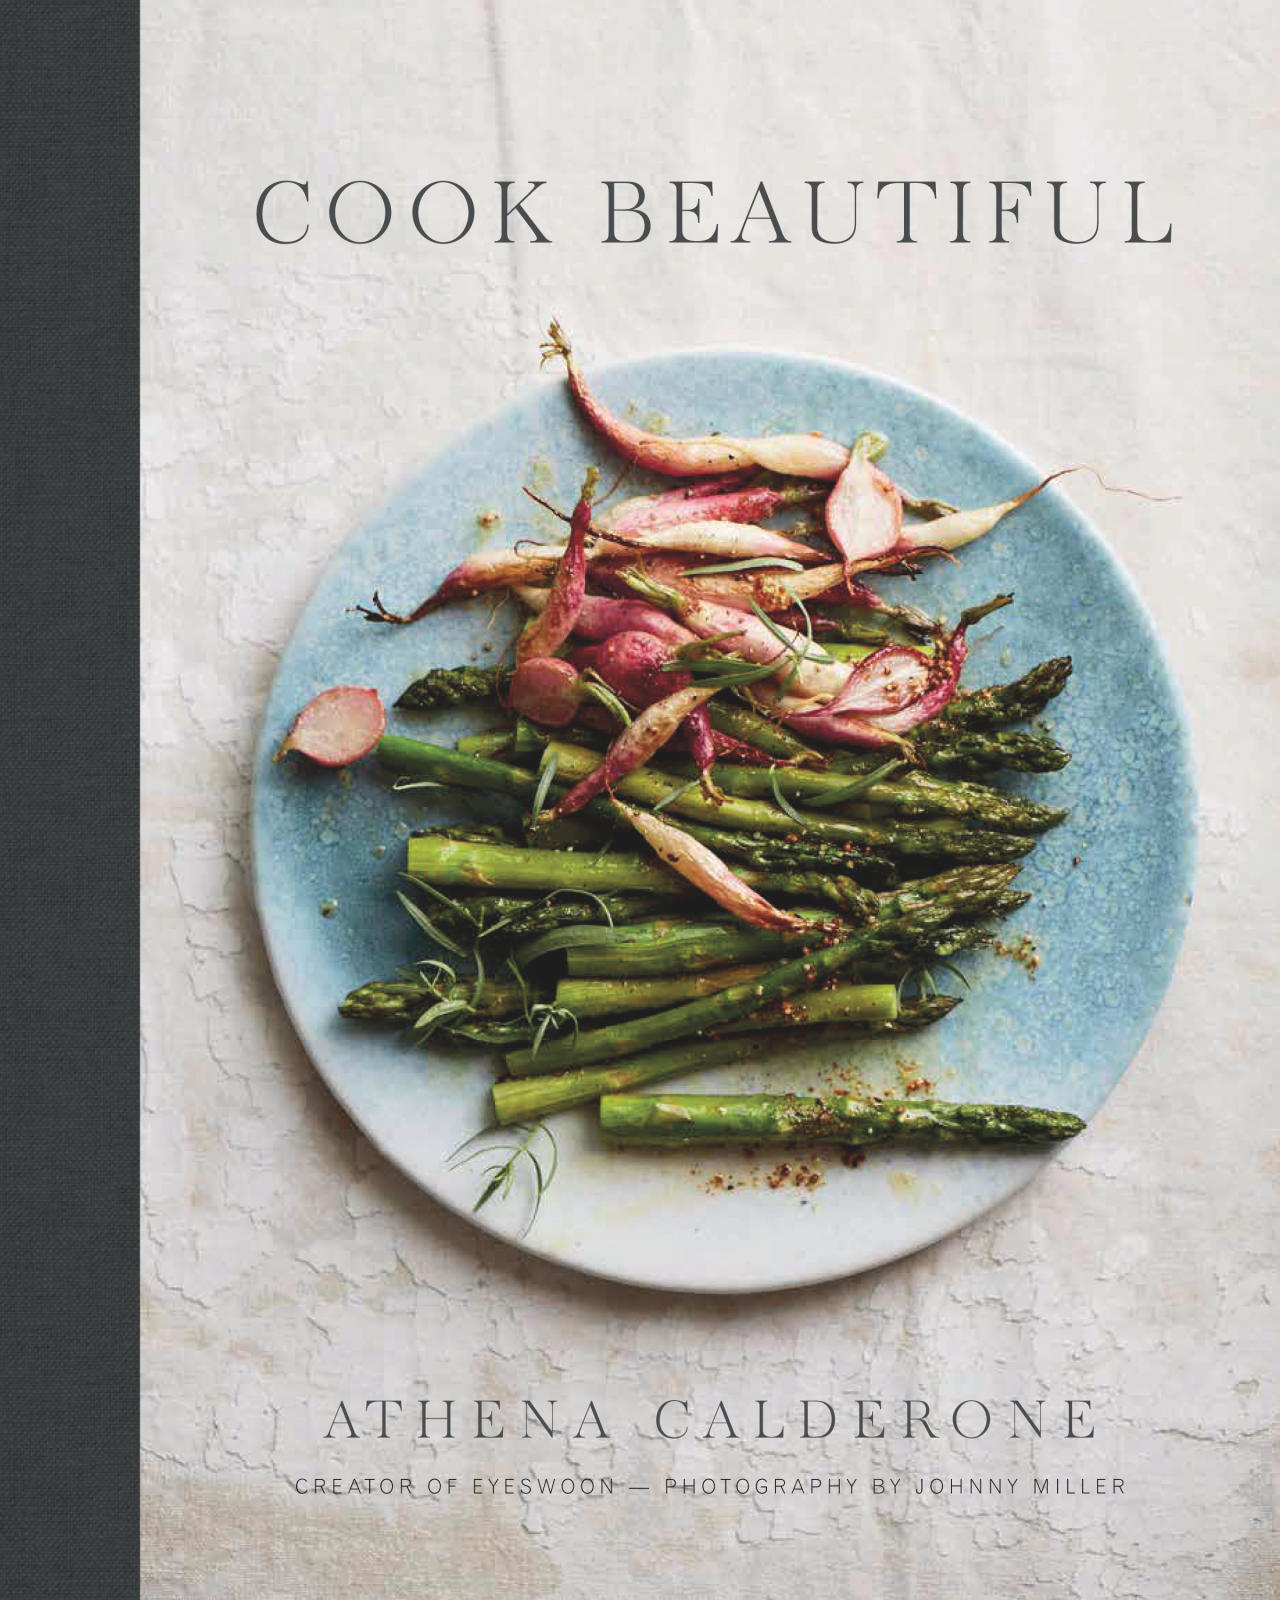 Athena Calderone on Food_BOOK COVER